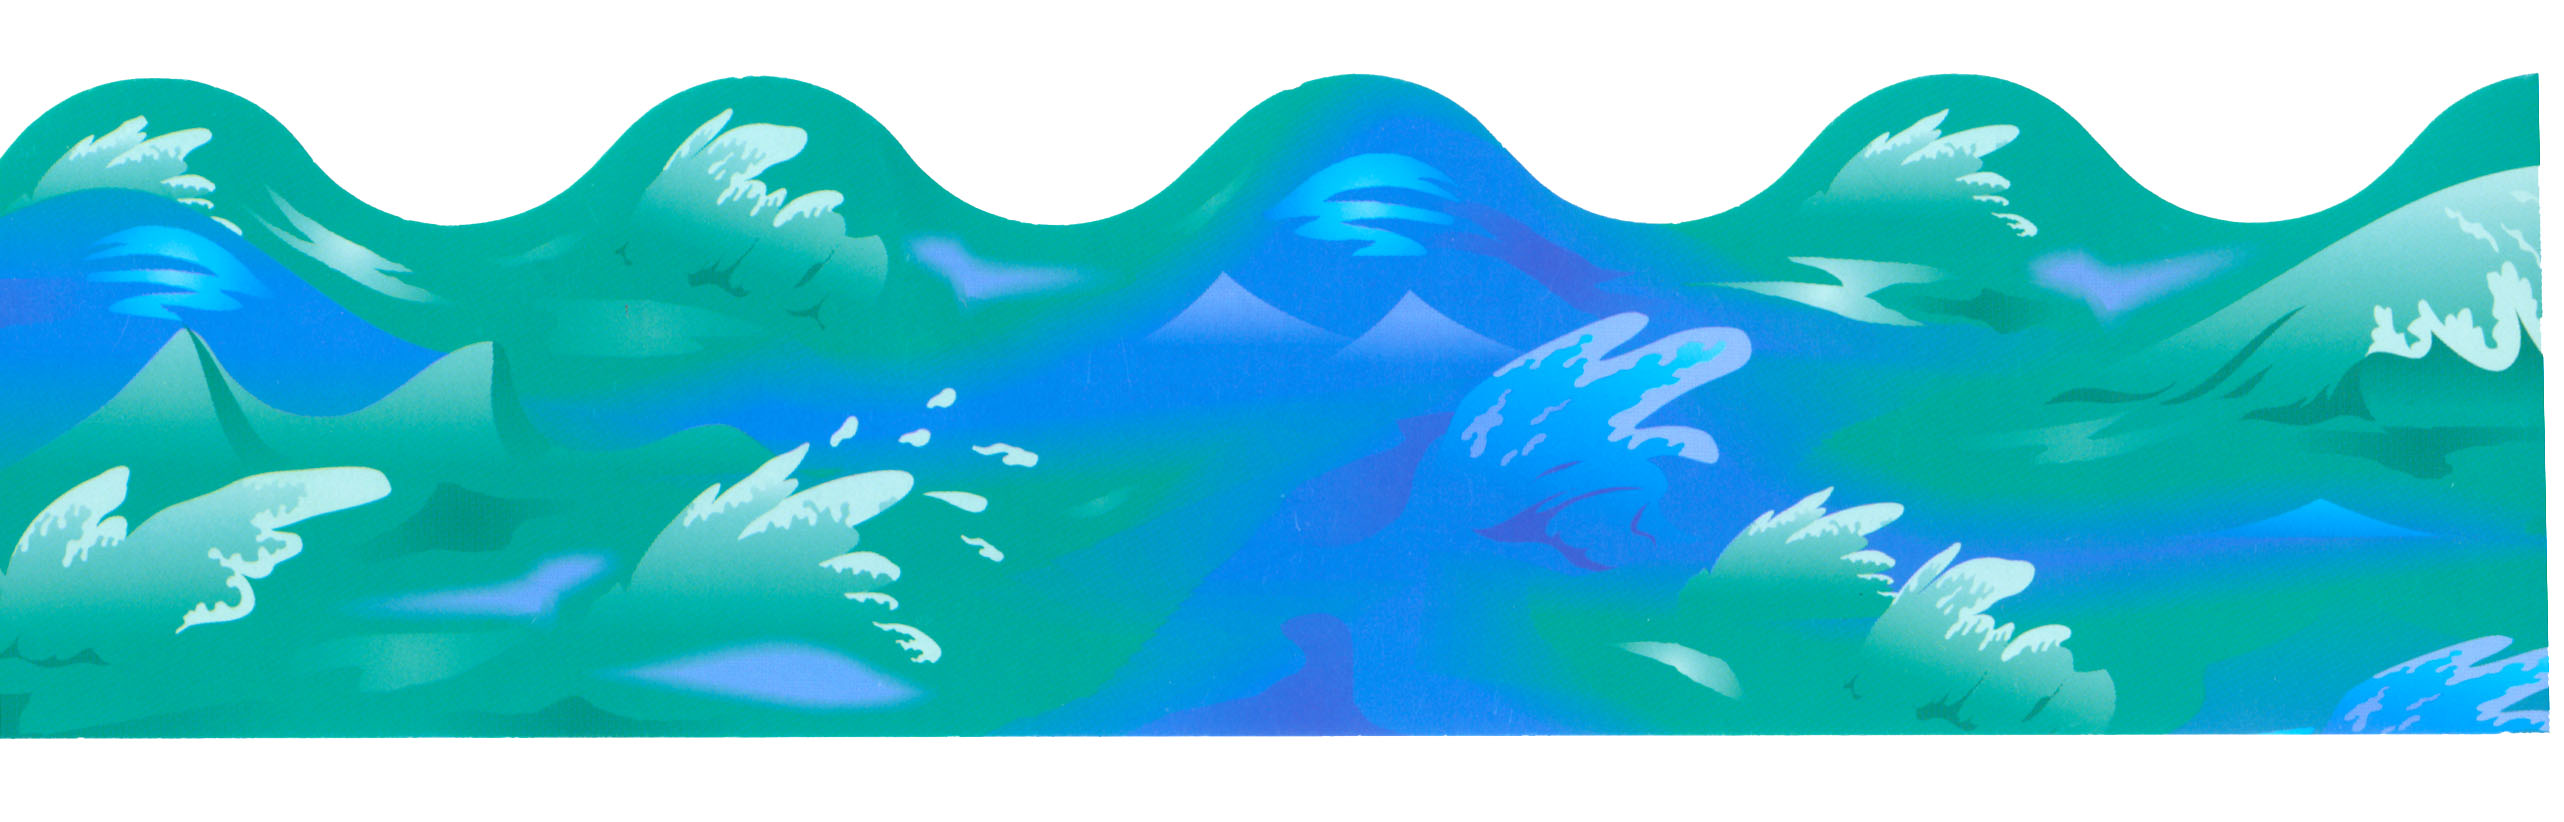 2564x822 Ocean Clipart Beach Wave